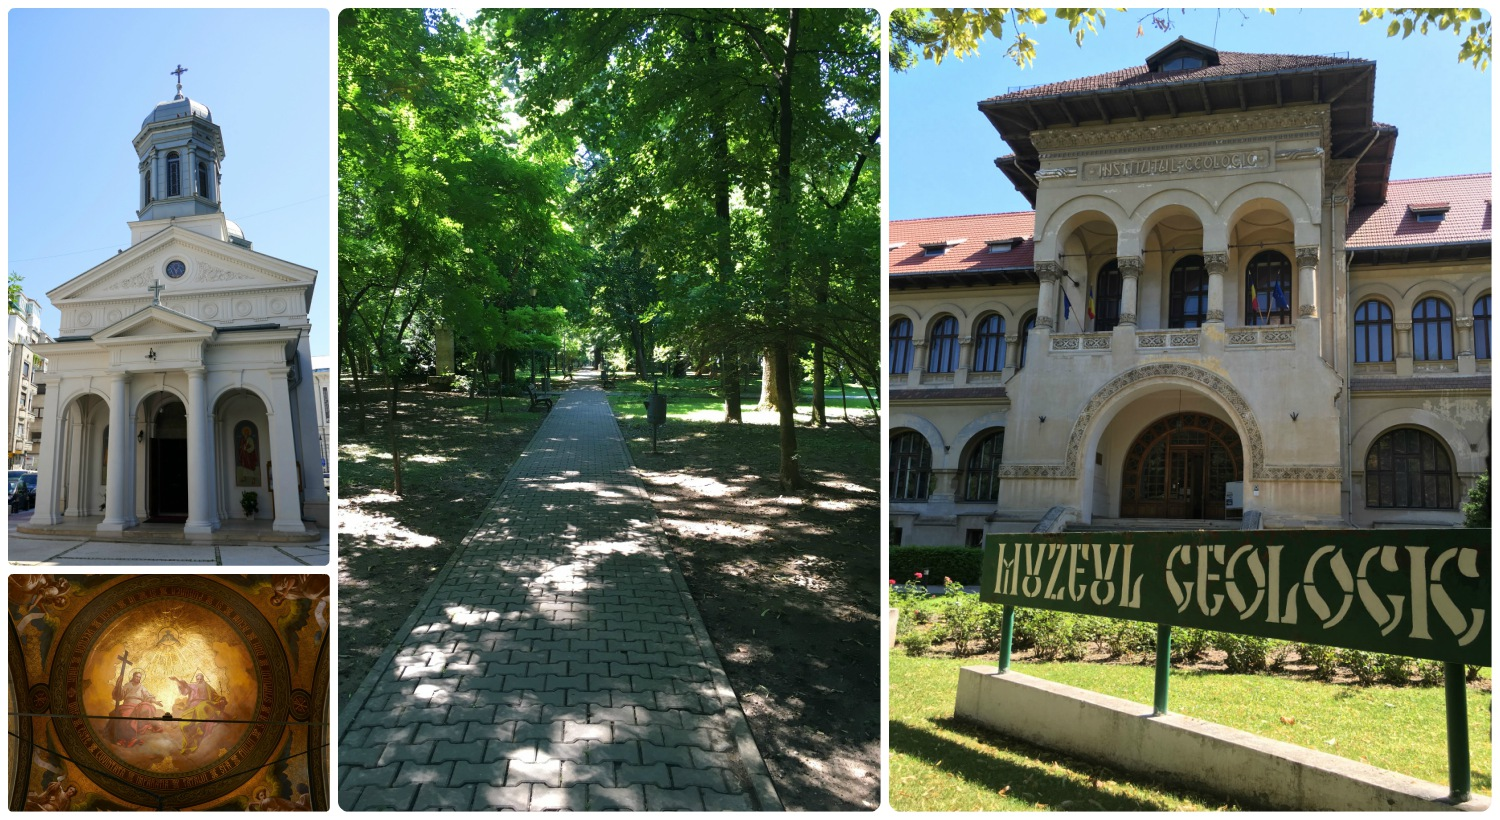 When we explored Bucharest by foot, we found many interesting places! Left to right: The exterior (top left image) and interior (bottom left) of White Church Parish (Biserica Alba), a walkway through Kisleff Park, the National Geology Museum.